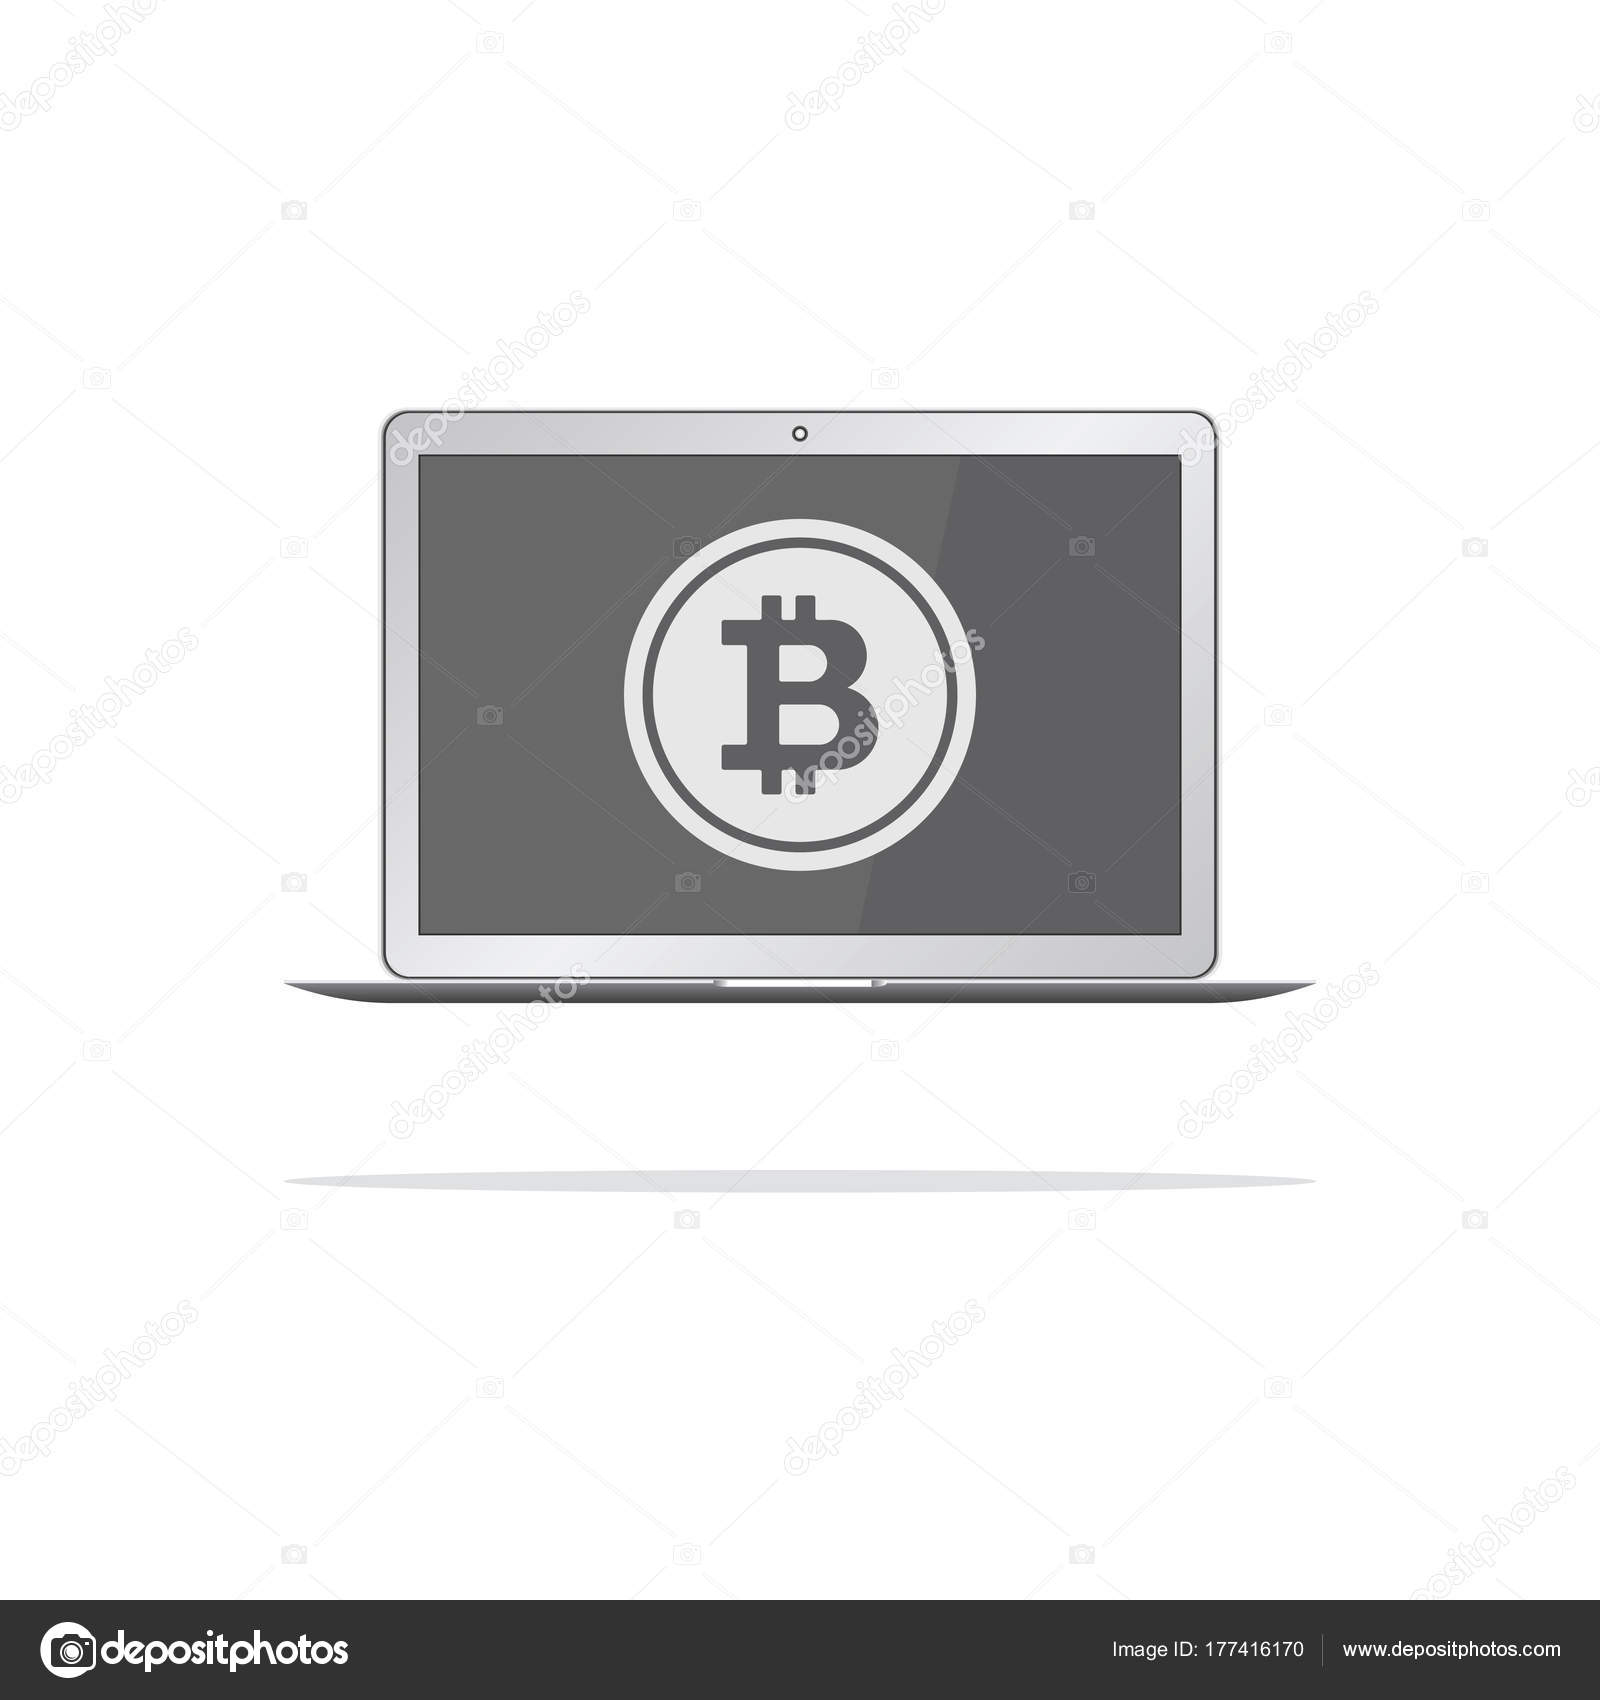 Nyse stock symbols gallery symbol and sign ideas bitcoin nyse stock symbol computer with bitcoin symbol on screen bitcoin trading concept vector illustration buycottarizona buycottarizona